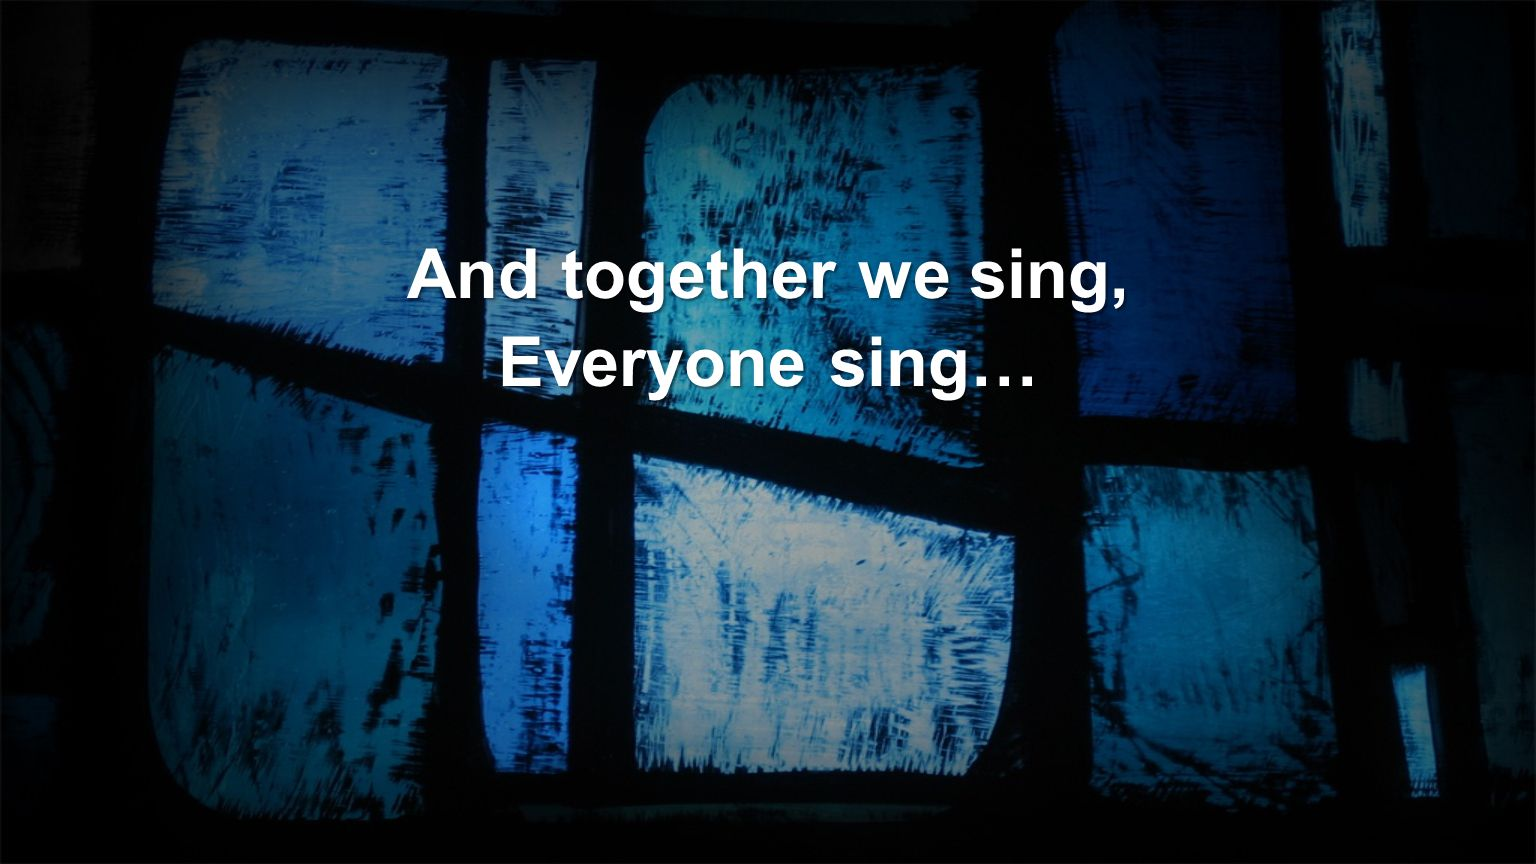 And together we sing, Everyone sing…